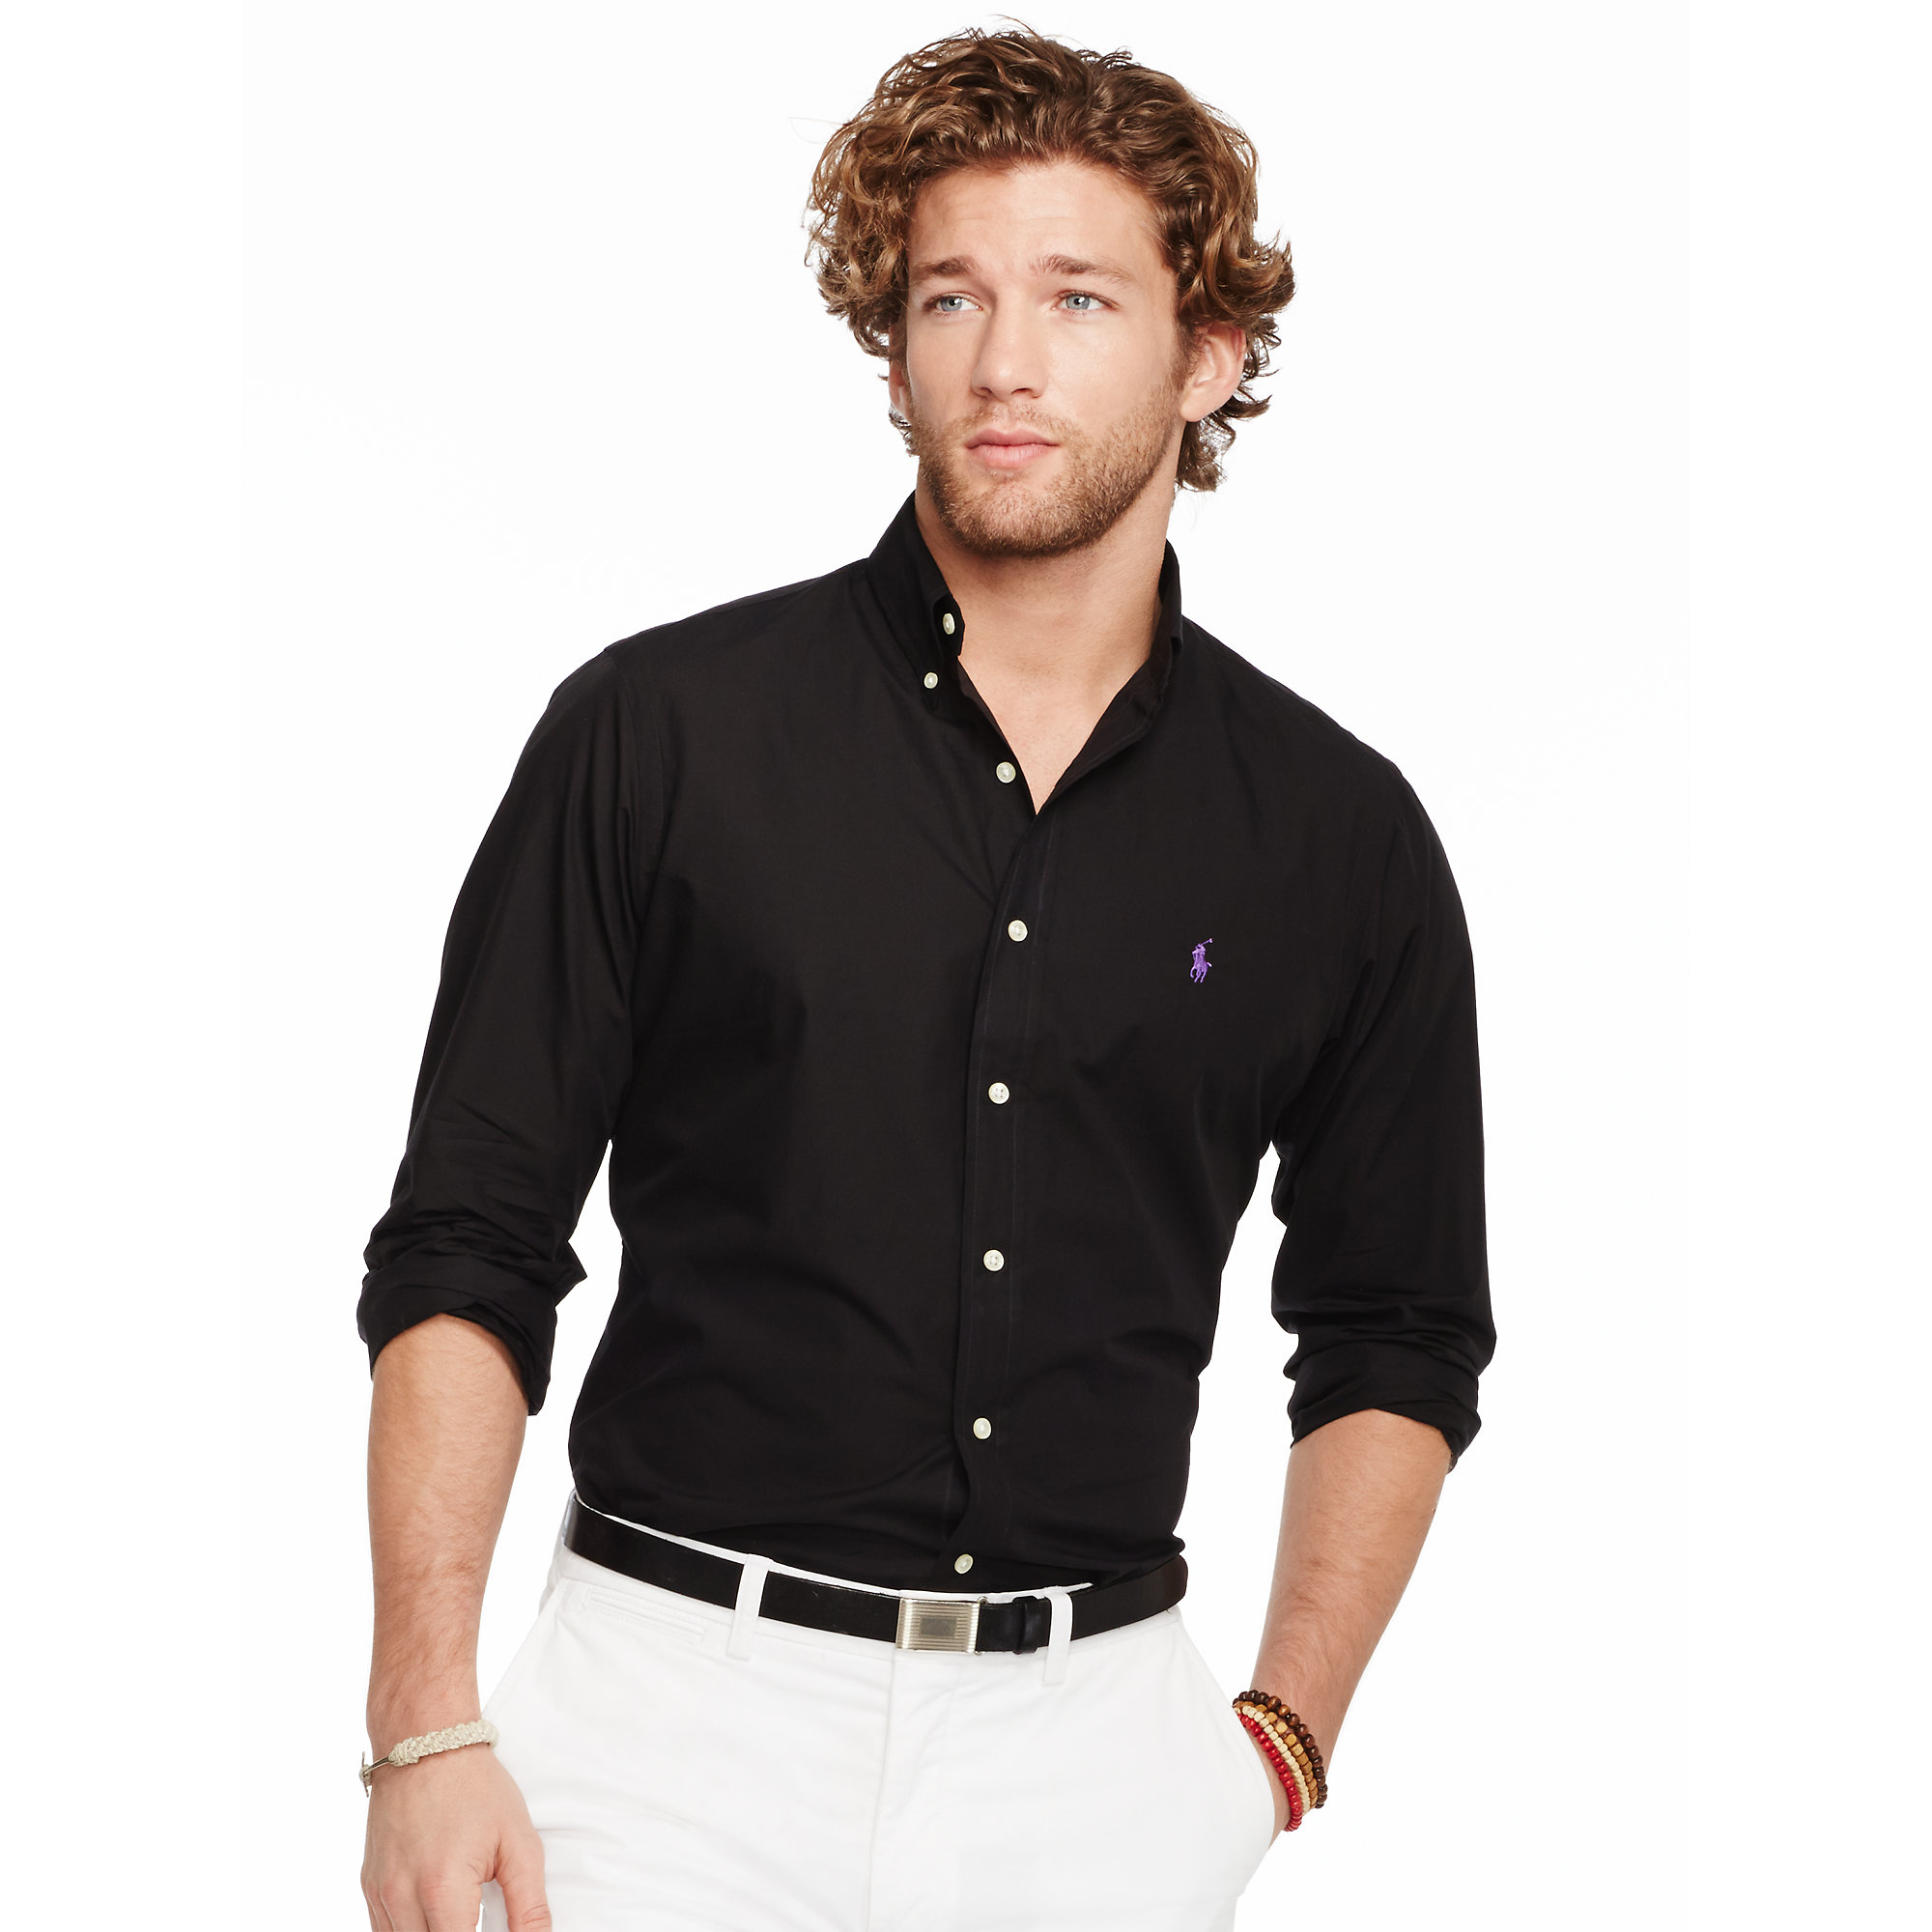 055f037ca62 ... promo code for lyst polo ralph lauren slim fit solid poplin shirt in  black for men